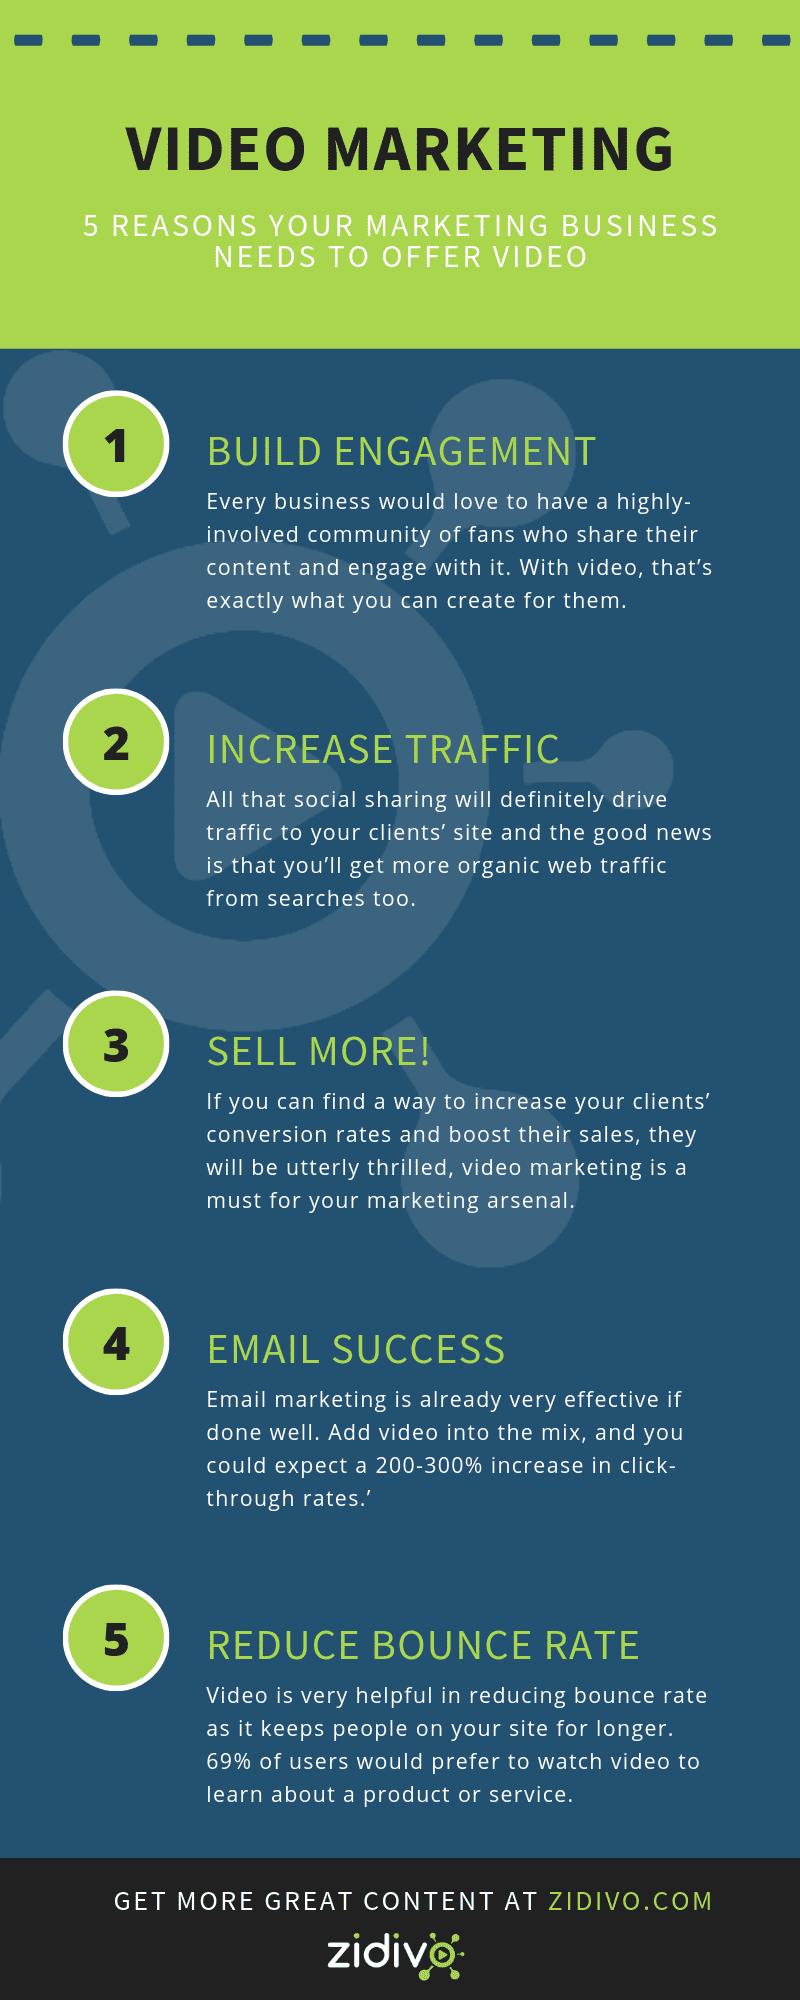 [Infographic] 5 Reasons Your Marketing Business Needs to Offer Video